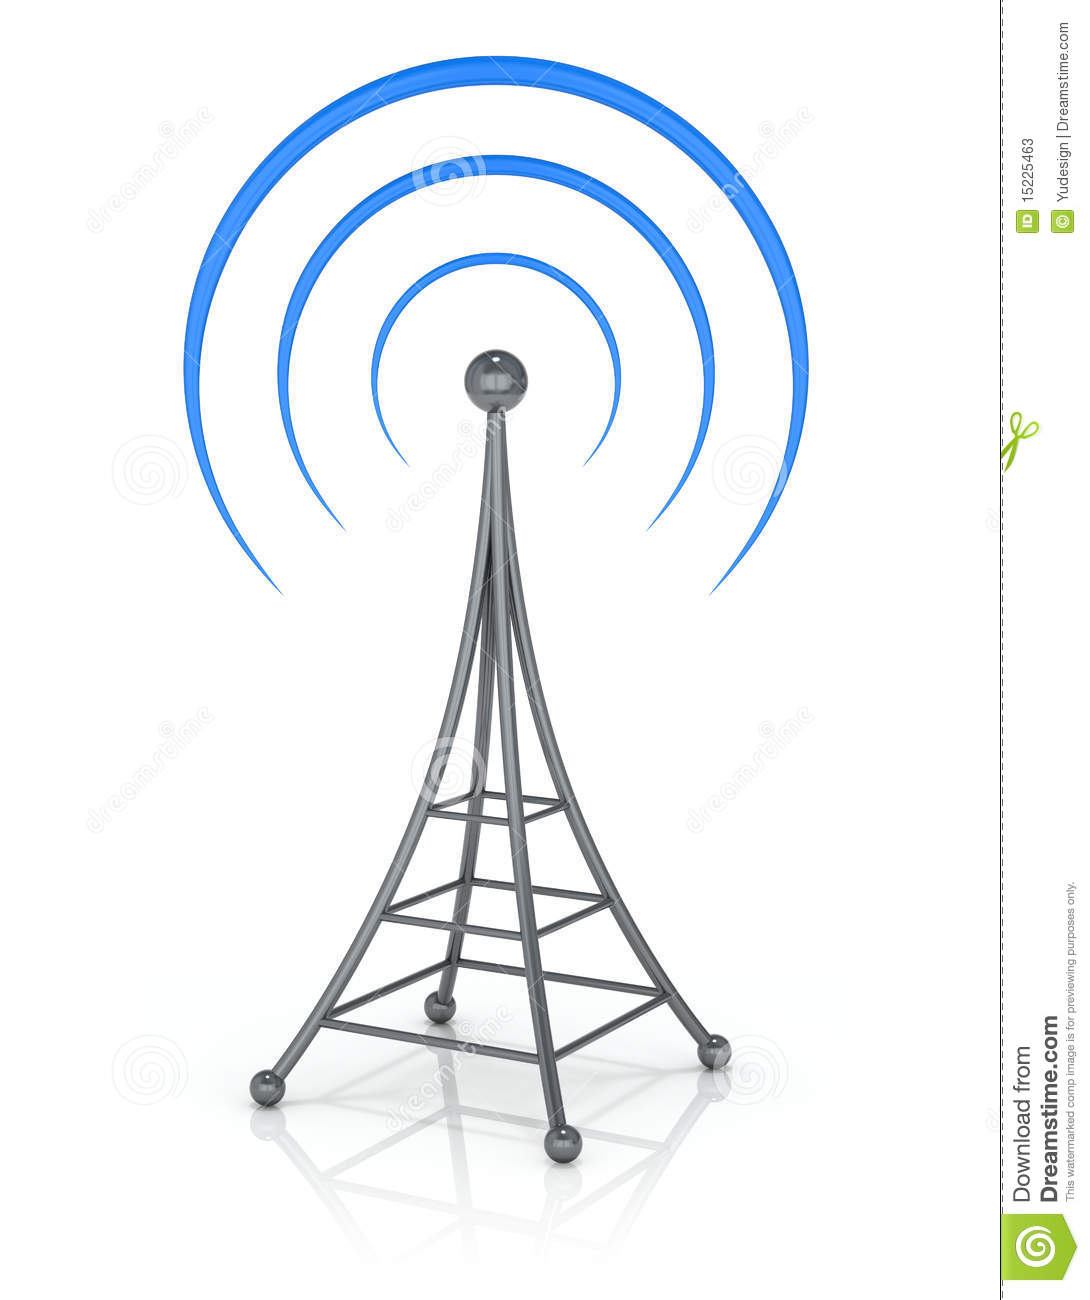 Radio Tower Clipart - Clipart Suggest